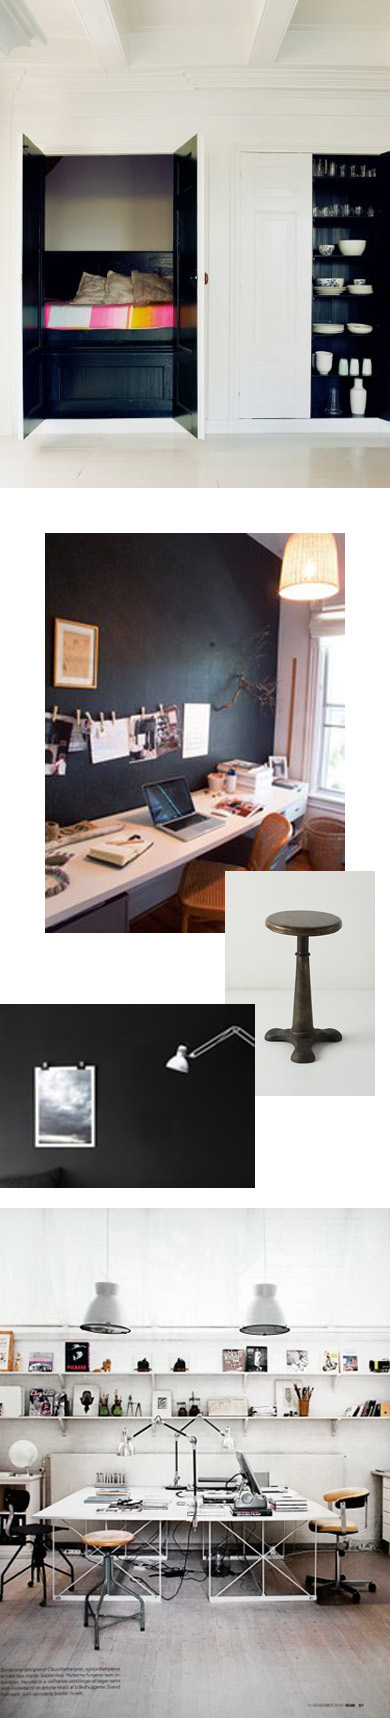 officeinspiration1.jpg